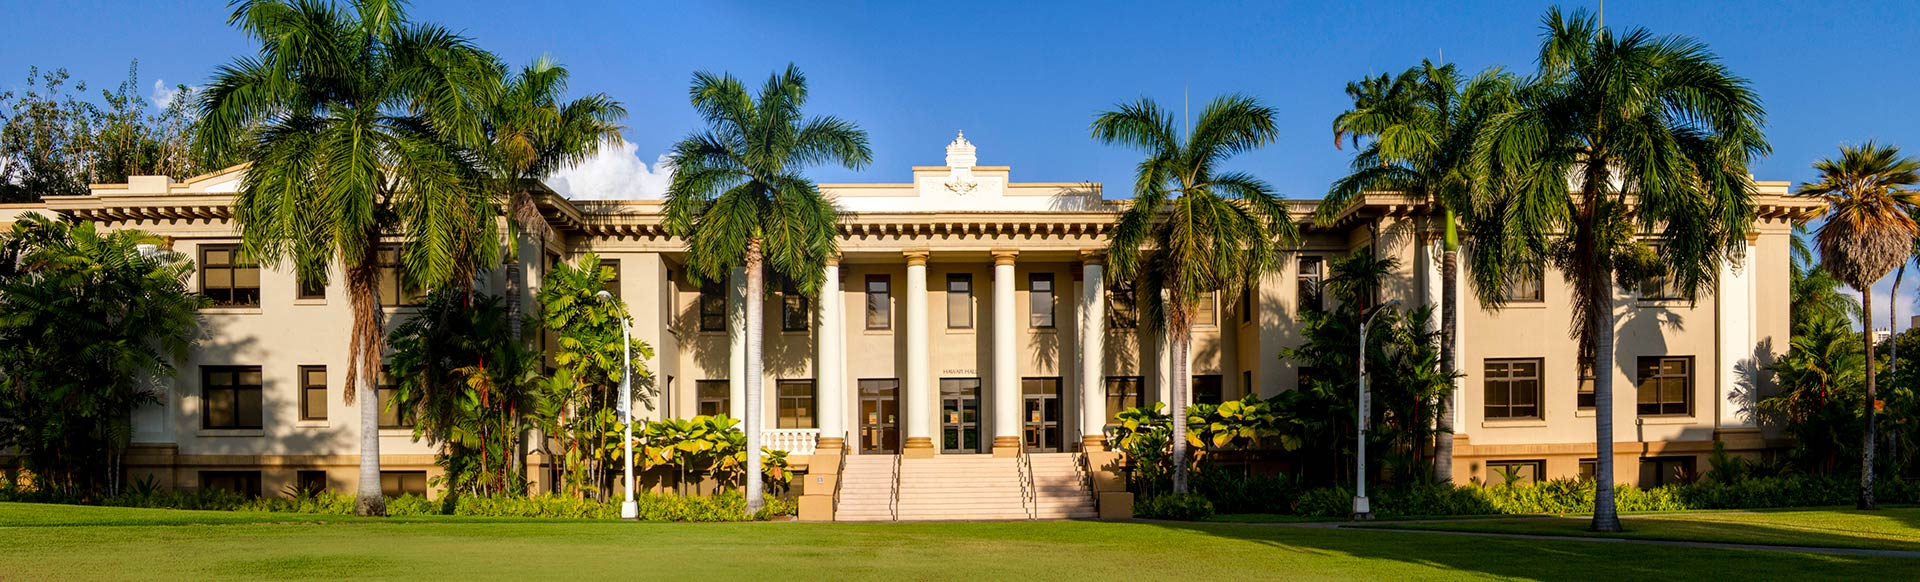 Hawaii Hall from Quad